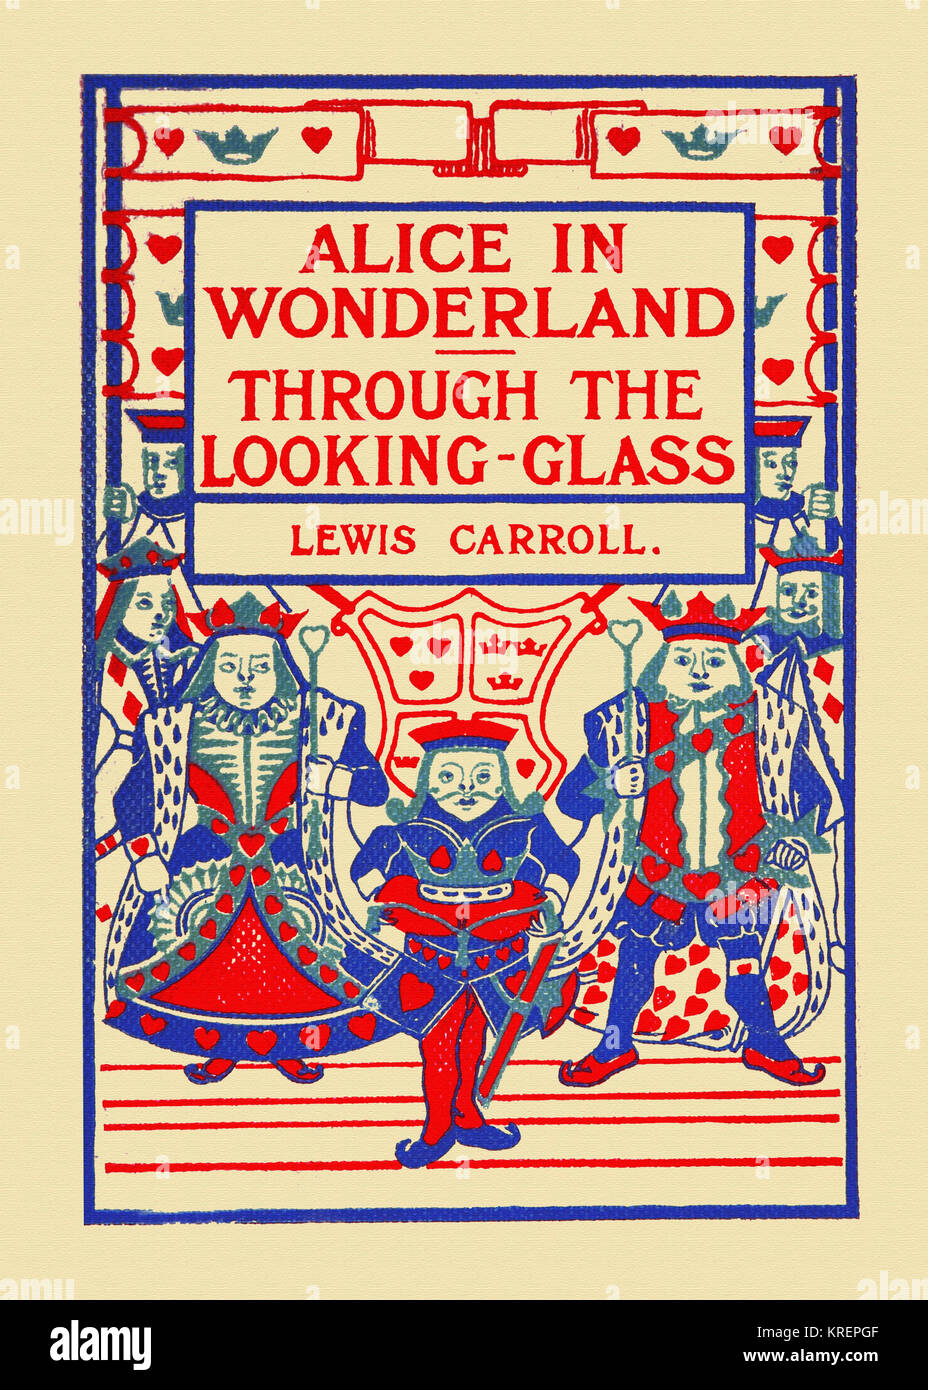 'Lewis Carroll's book cover to ''Alice's Adventures in Wonderland & Through the Looking - Stock Image